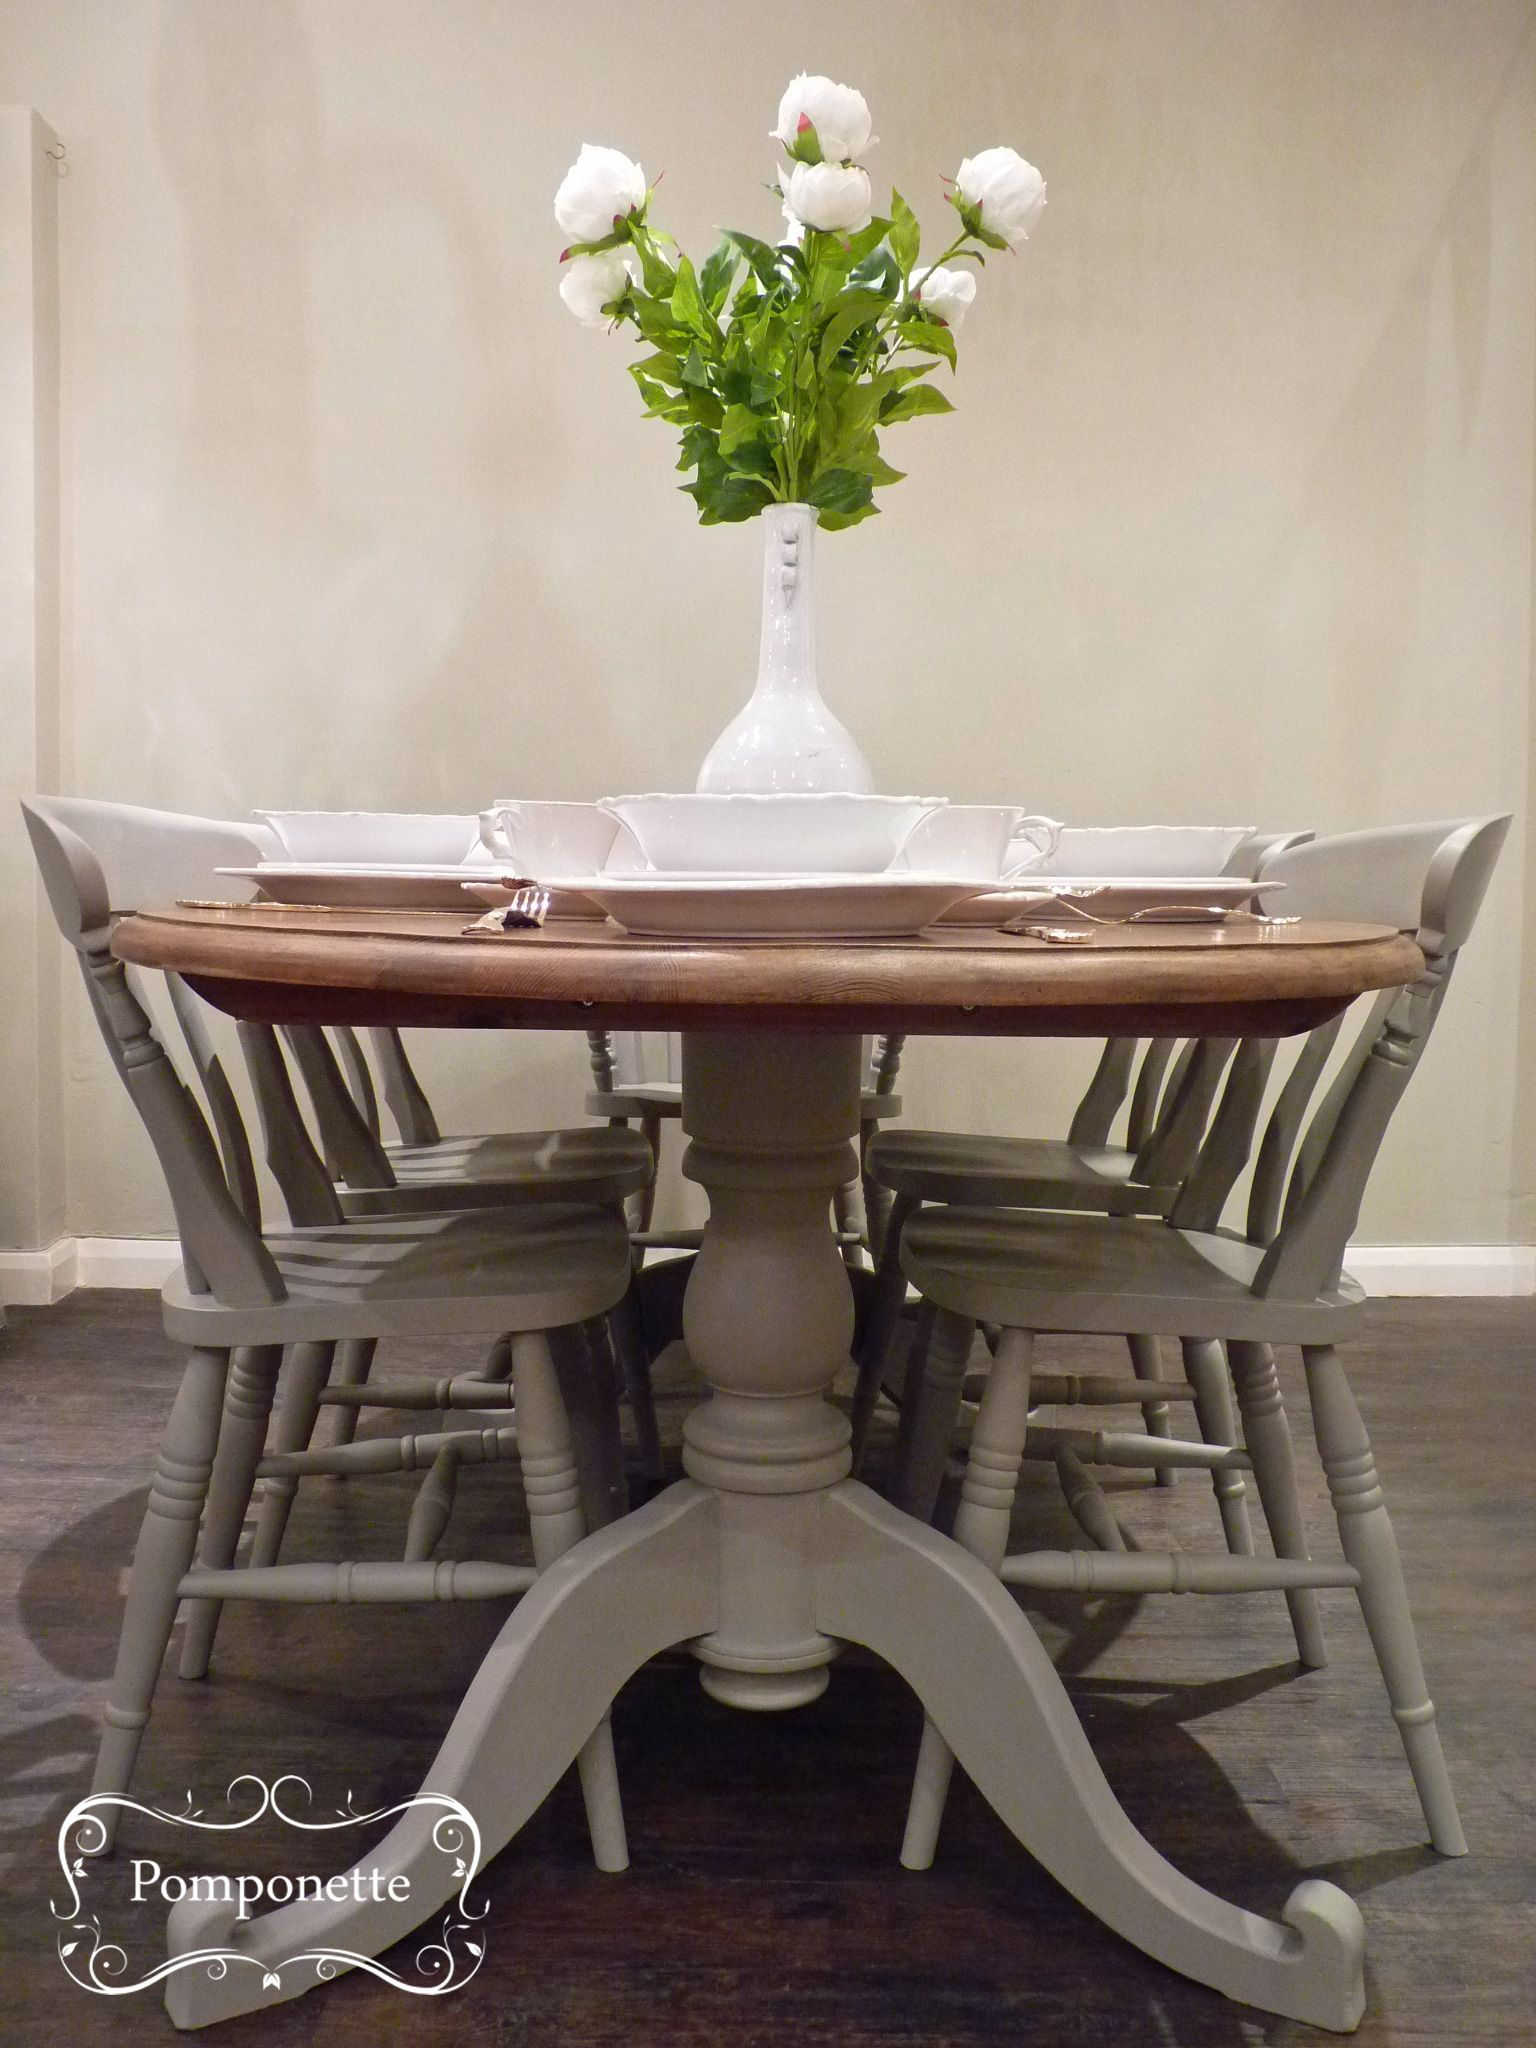 gray kitchen table Oval Dining Table and Six Chairs Pedestal detail anniesloanhome custom mix to create